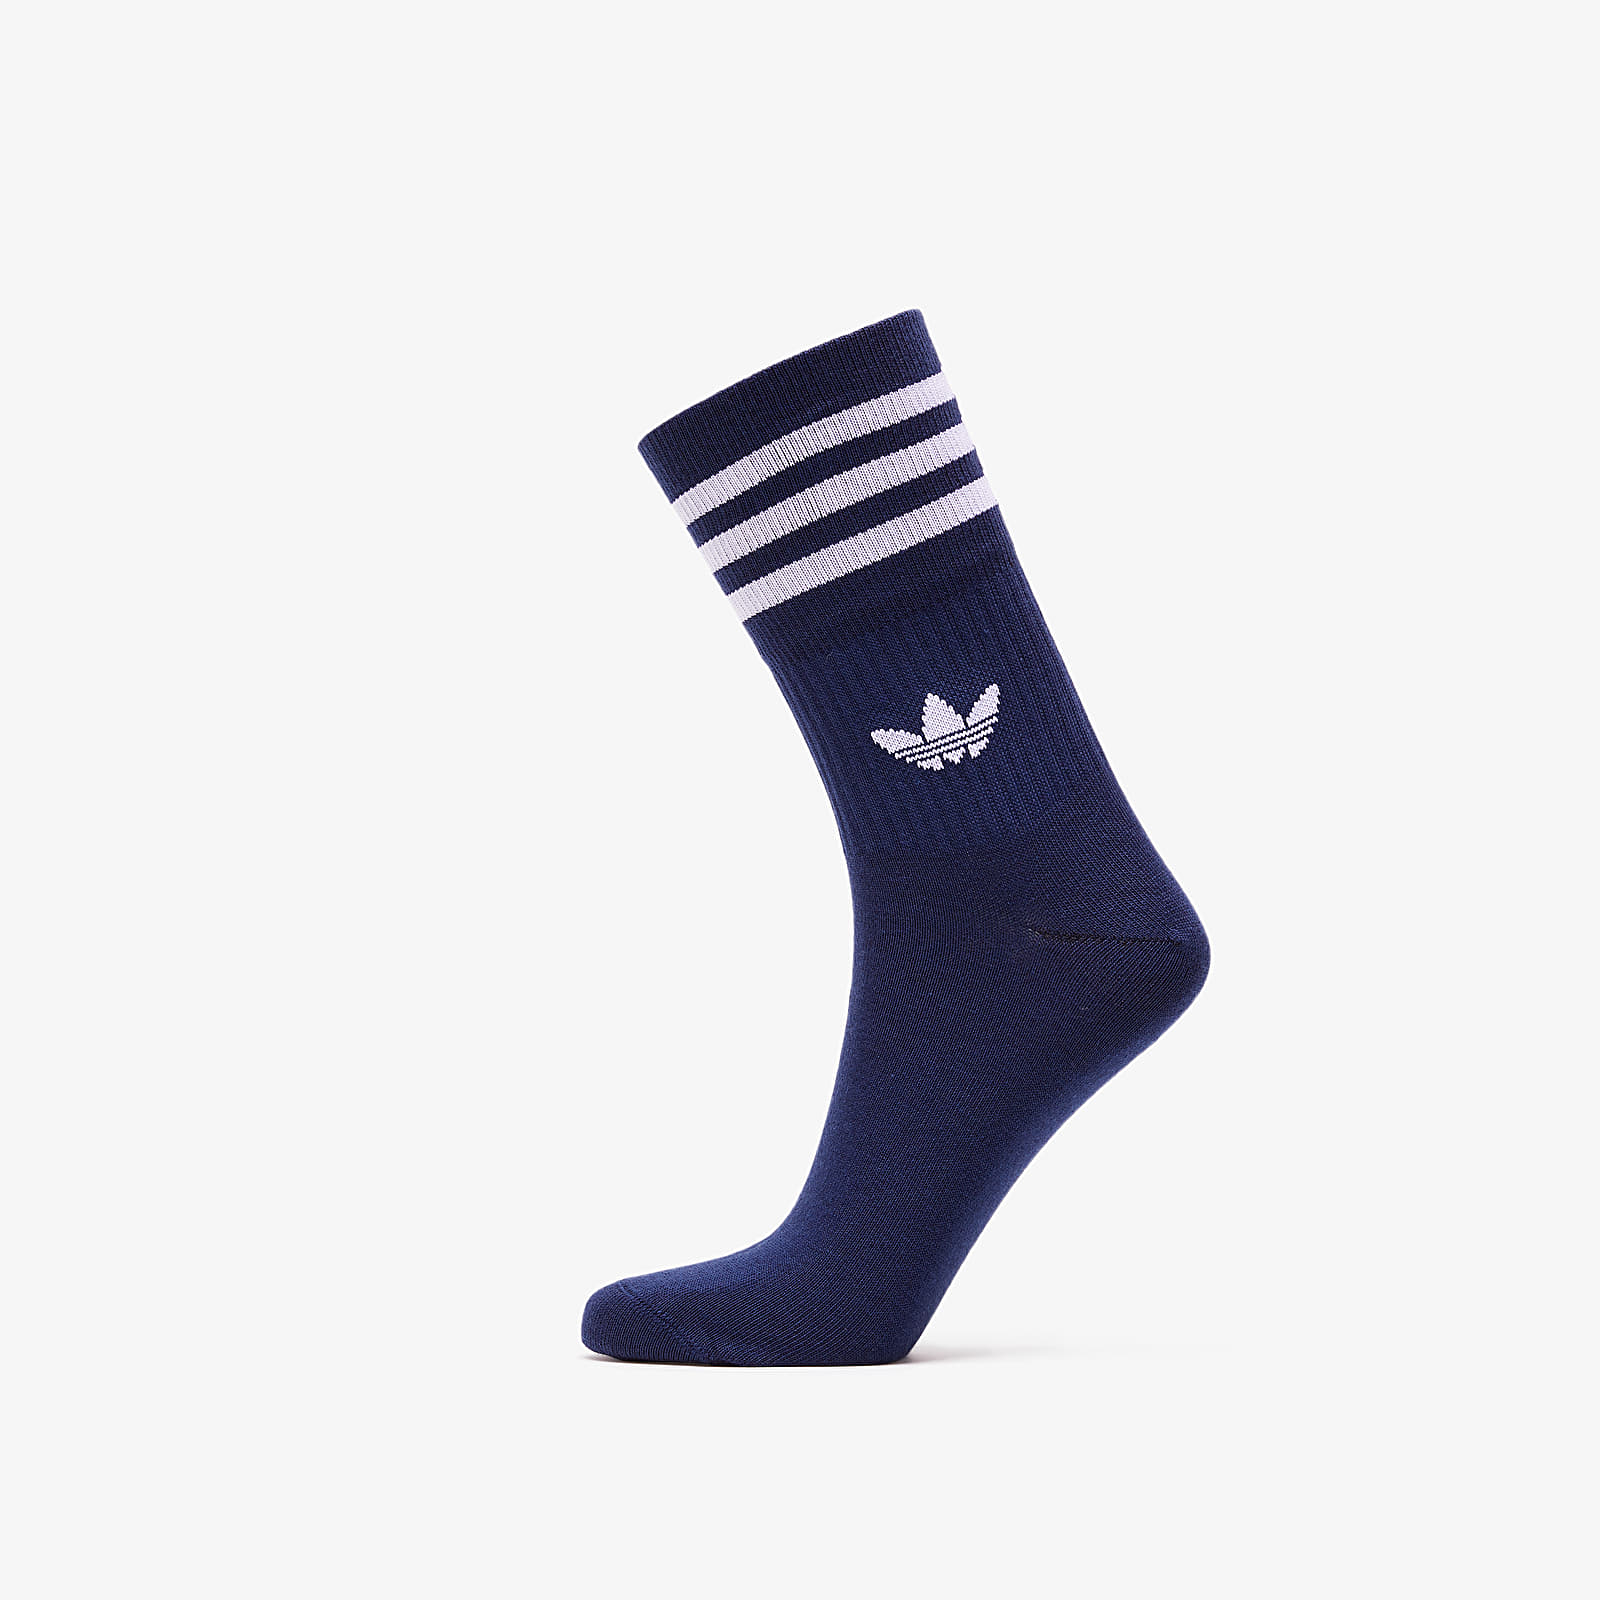 Socks adidas 3 Pack Mid Cut Crew Socks Collegiate Navy/ Collegiate Royal/ White